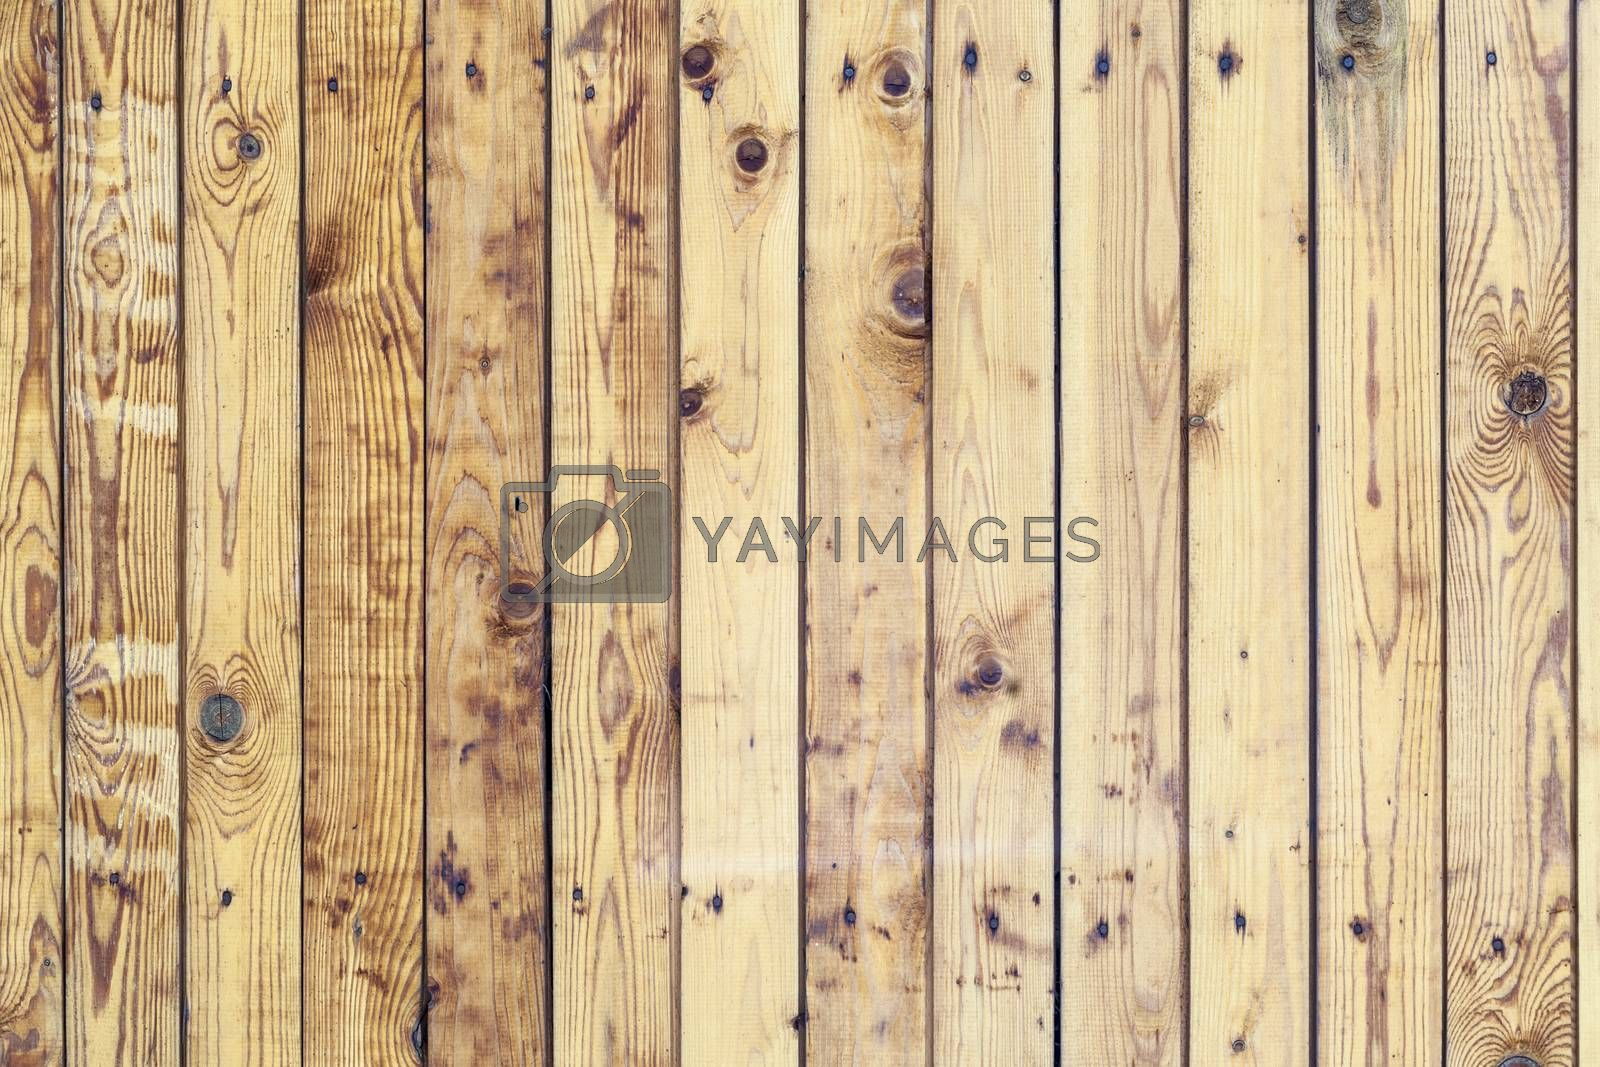 Natural Dark Wooden Background. Timber wall